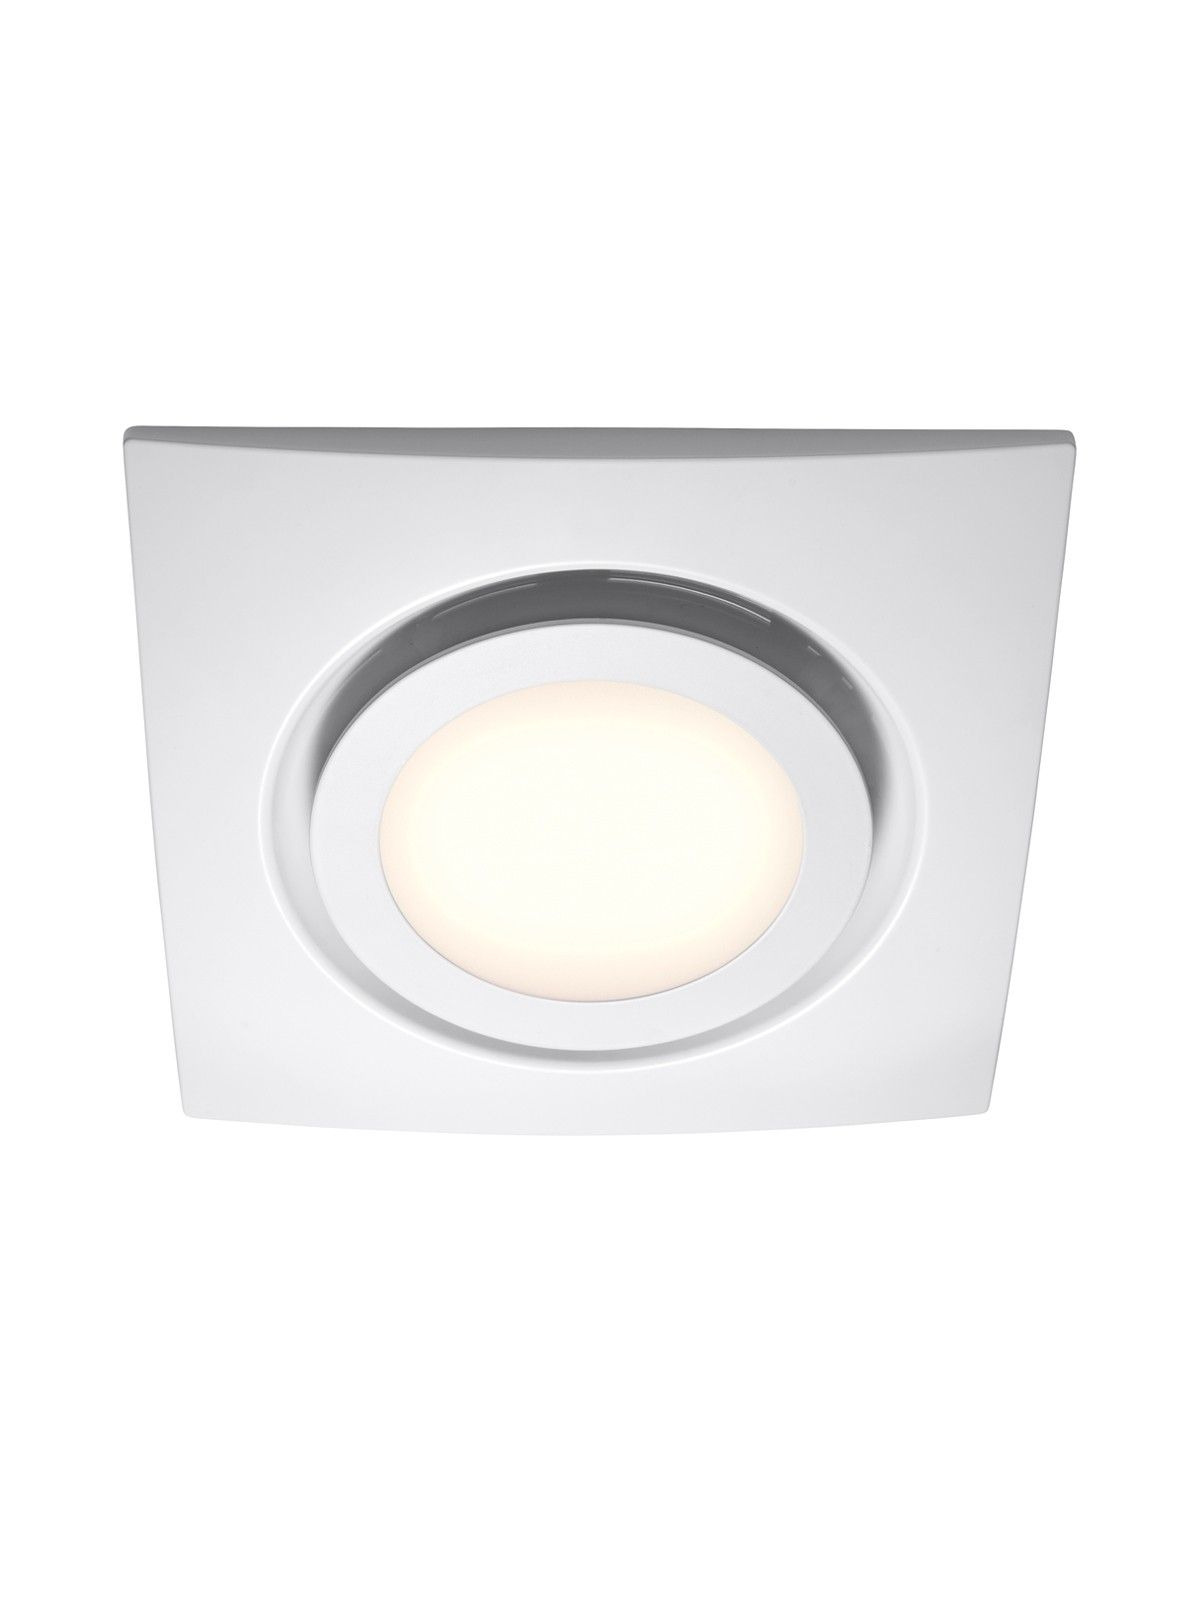 Decorative Bathroom Exhaust Fan with Light Unique Exhaust Fan and Light In Shower Stall Tutalo